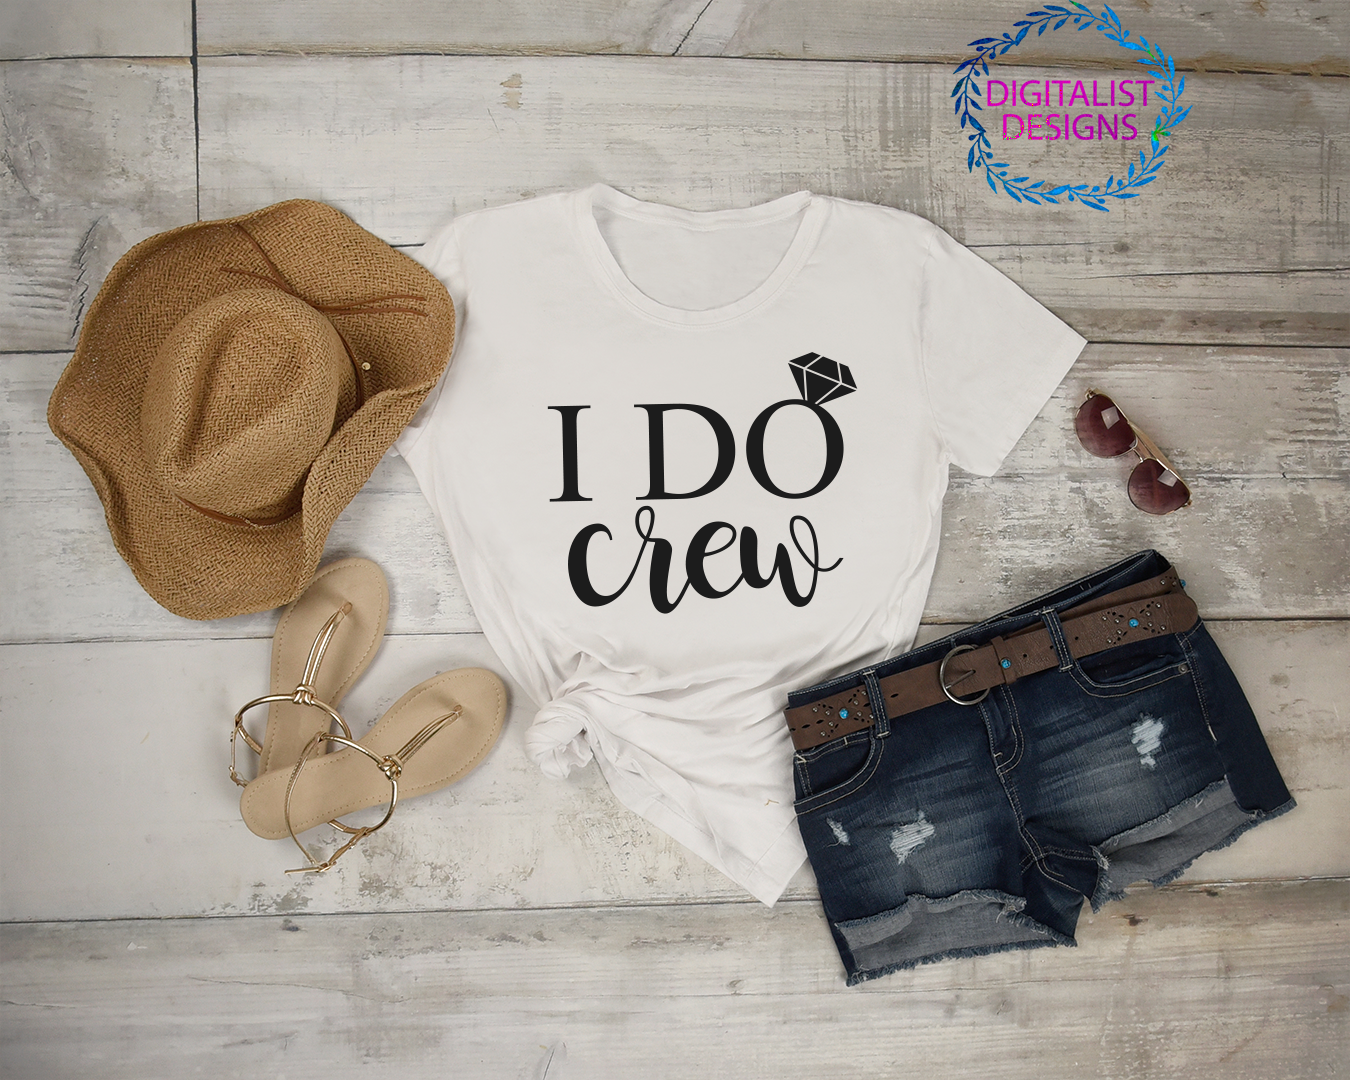 wedding svg, i do crew svg, wedding ring svg, bride shirt, bridal party, bride gifts, iron on, svg for cricut design space, silhouette example image 2